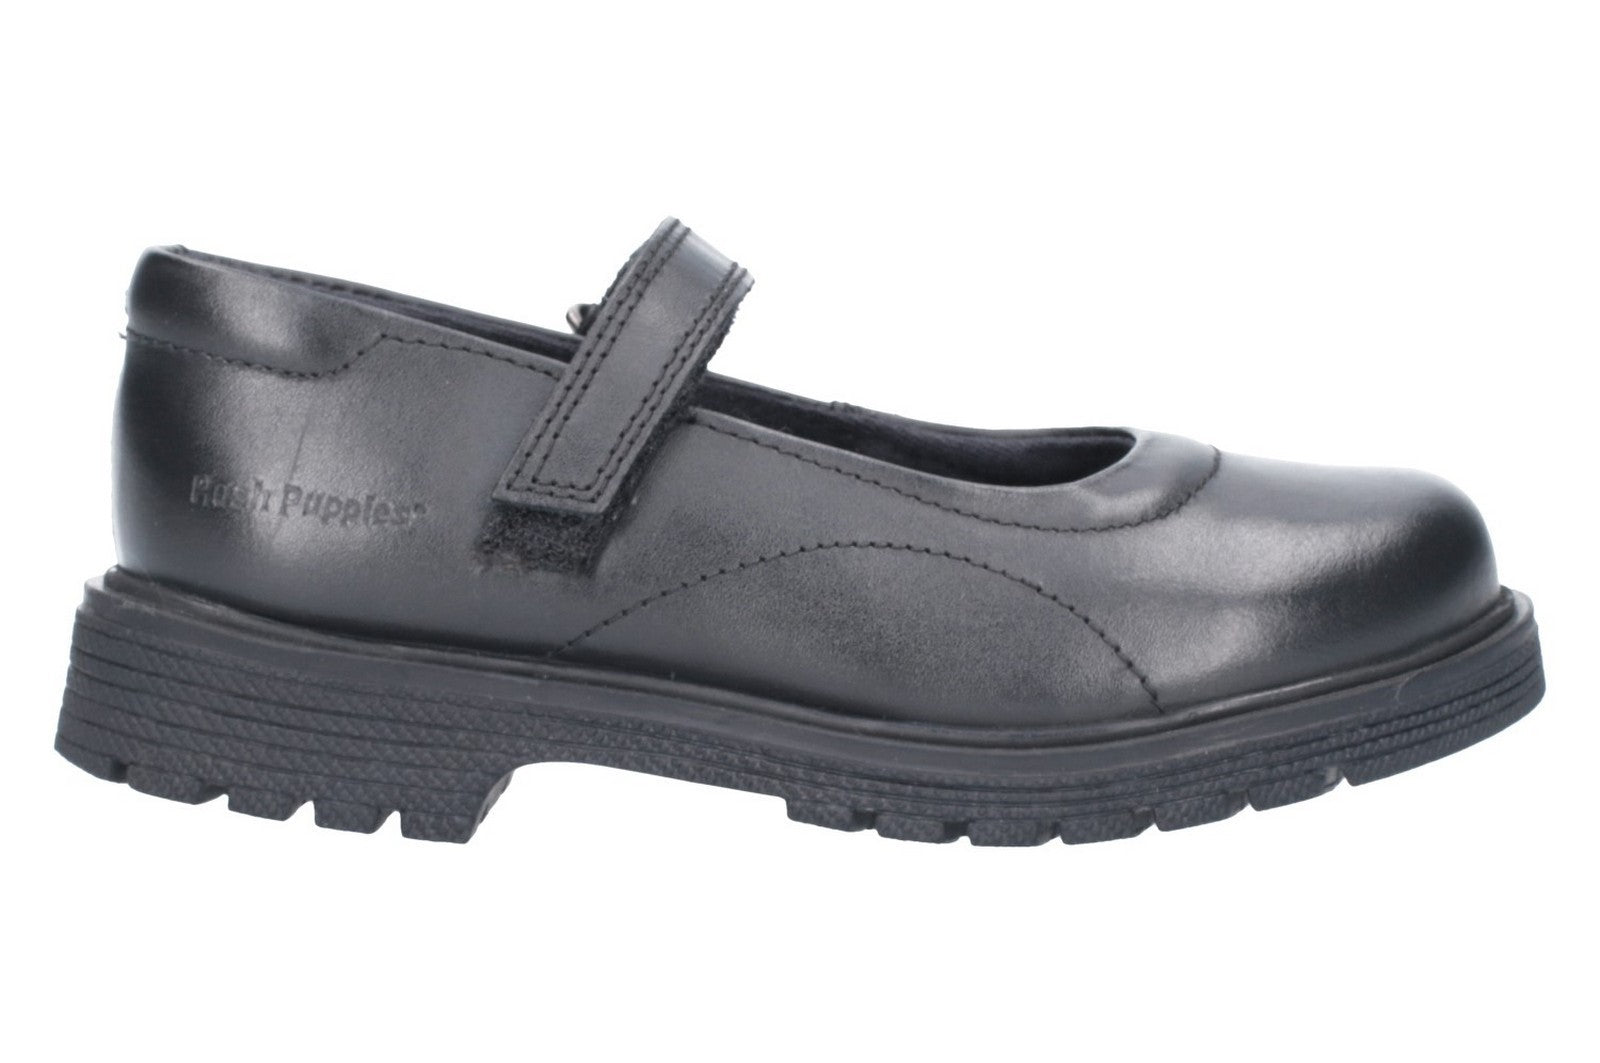 Hush Puppies Men's Tally Junior Touch Fastening Shoe Black 26394